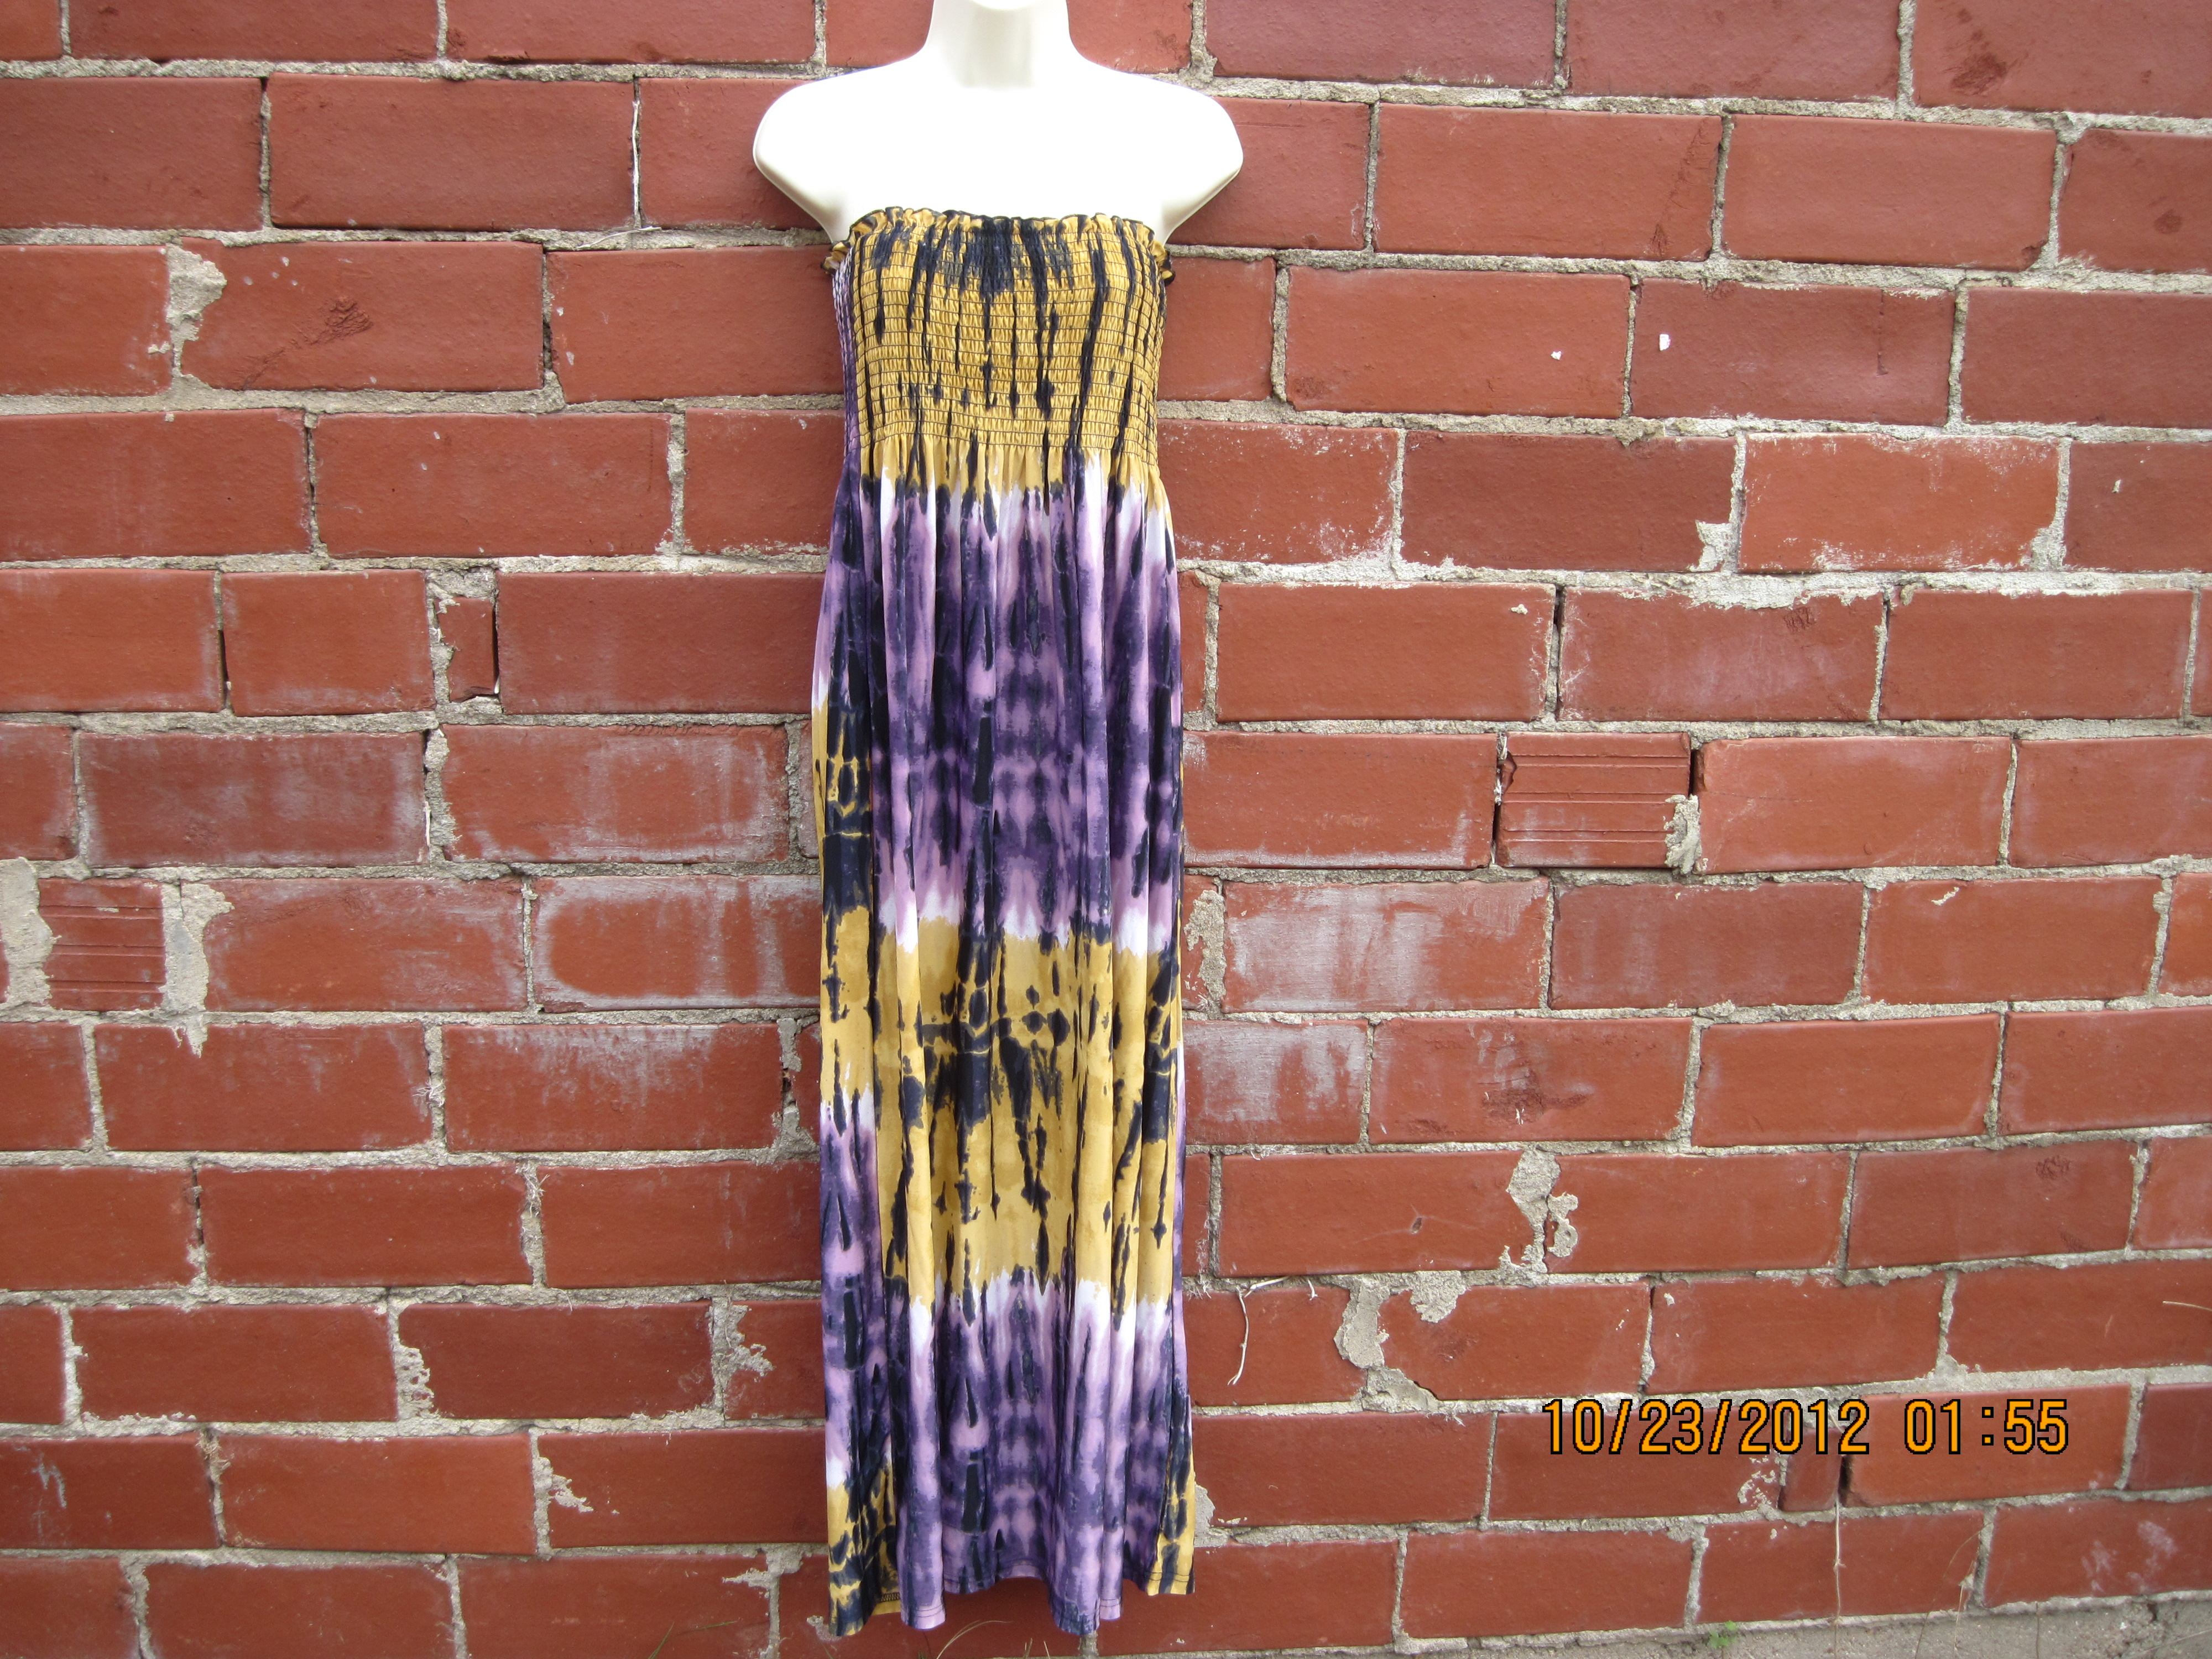 Chesley Sz M Tube Top Dress(purple,burnt yellow)